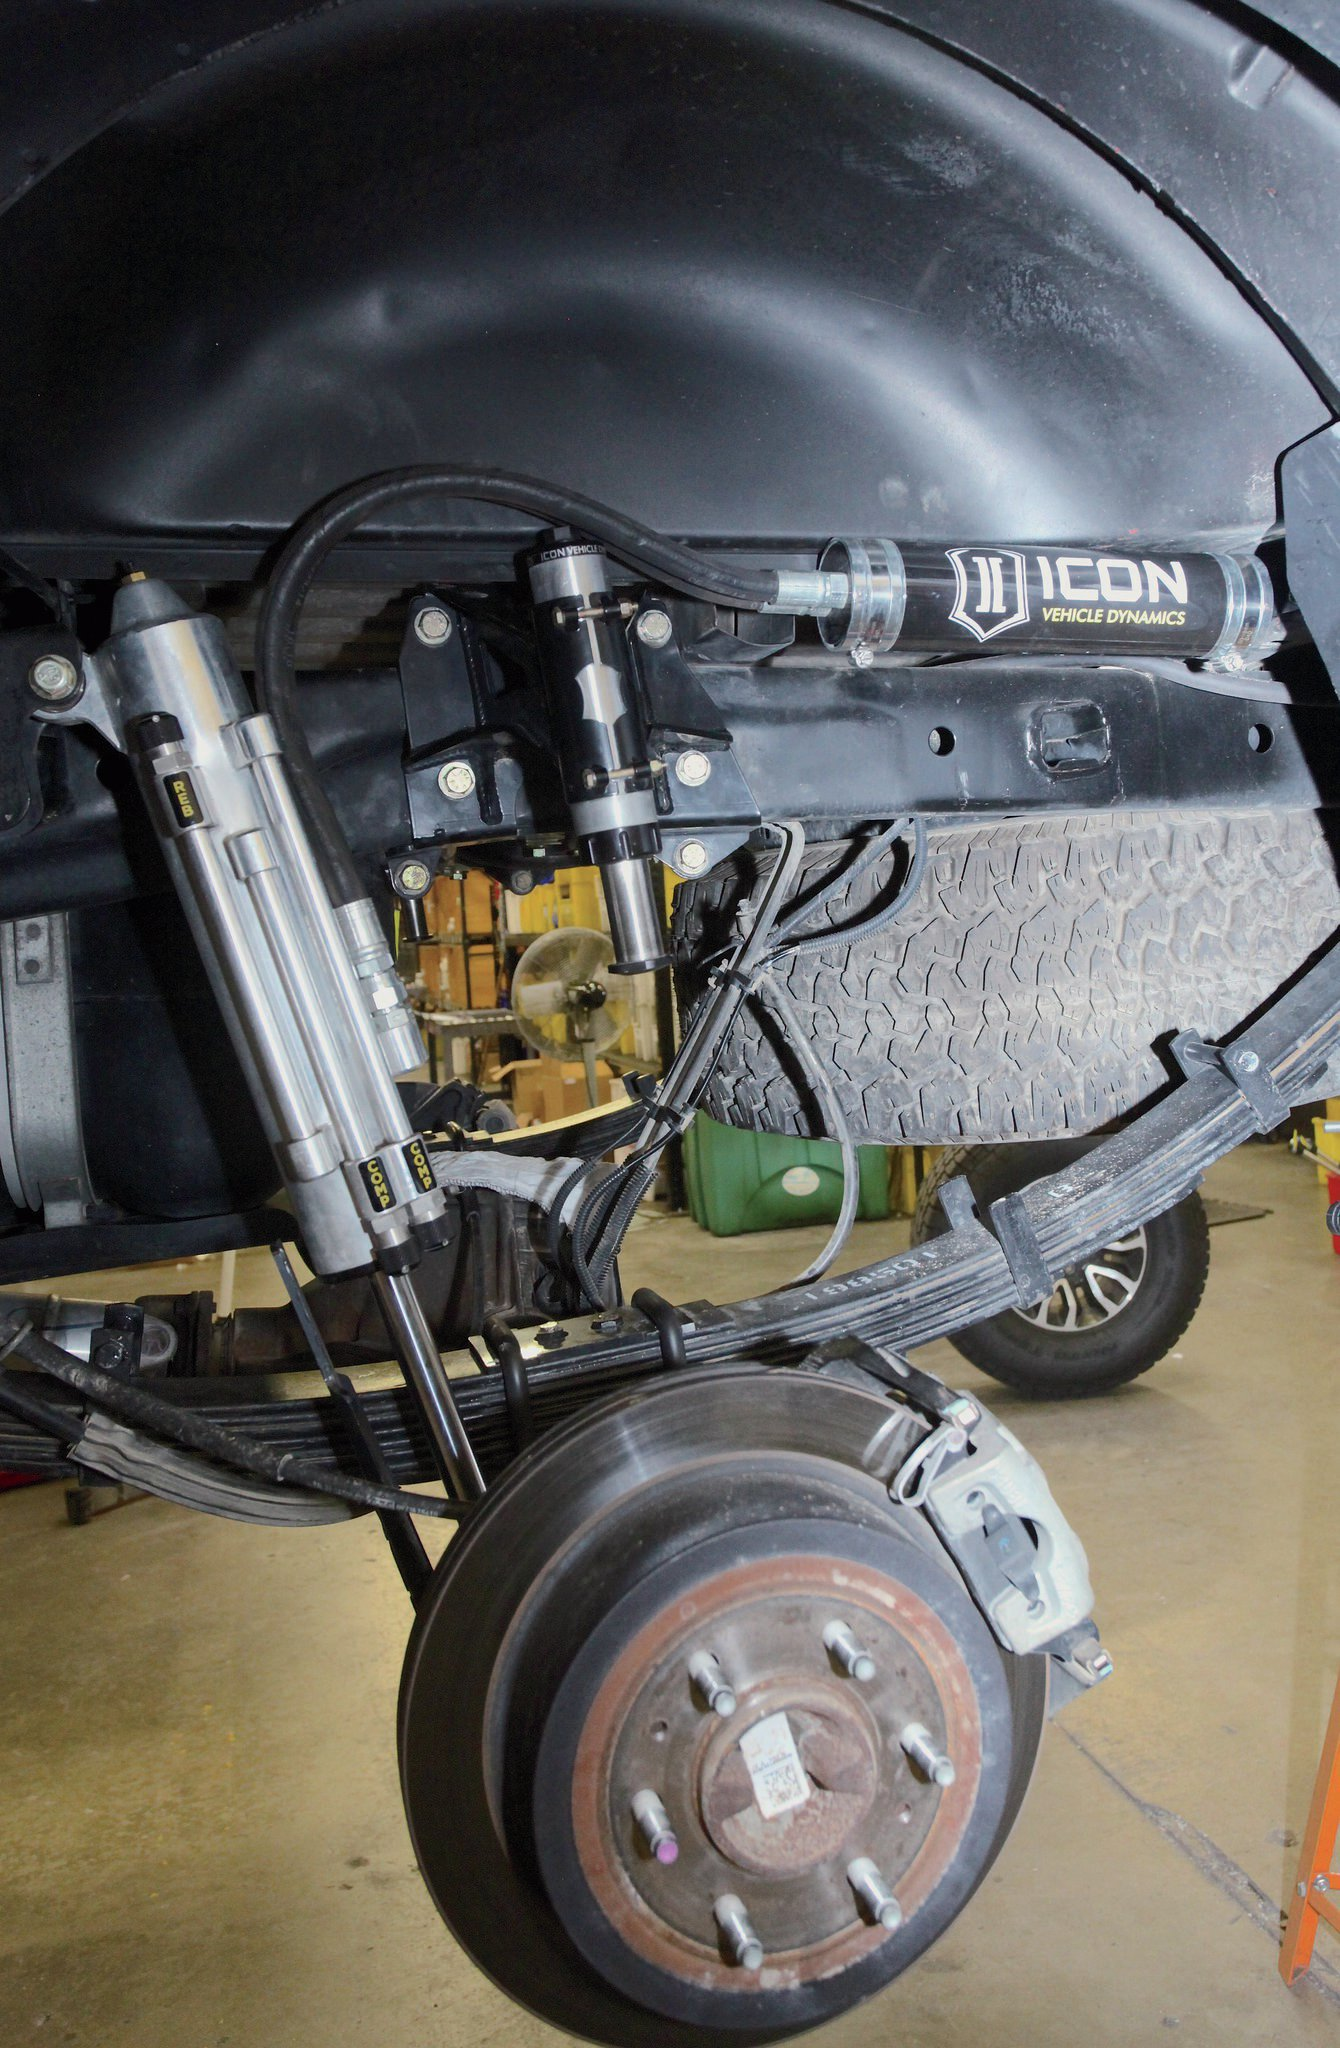 Unlike the stock bumpstop that hits the leaf springs the ICON bumpstop plate is attached to the axletube. Now the rear suspension is just as refined as the front. And gone is the stock's tendency to harshly bottom out during big hits and possibly buck the truck to the side.